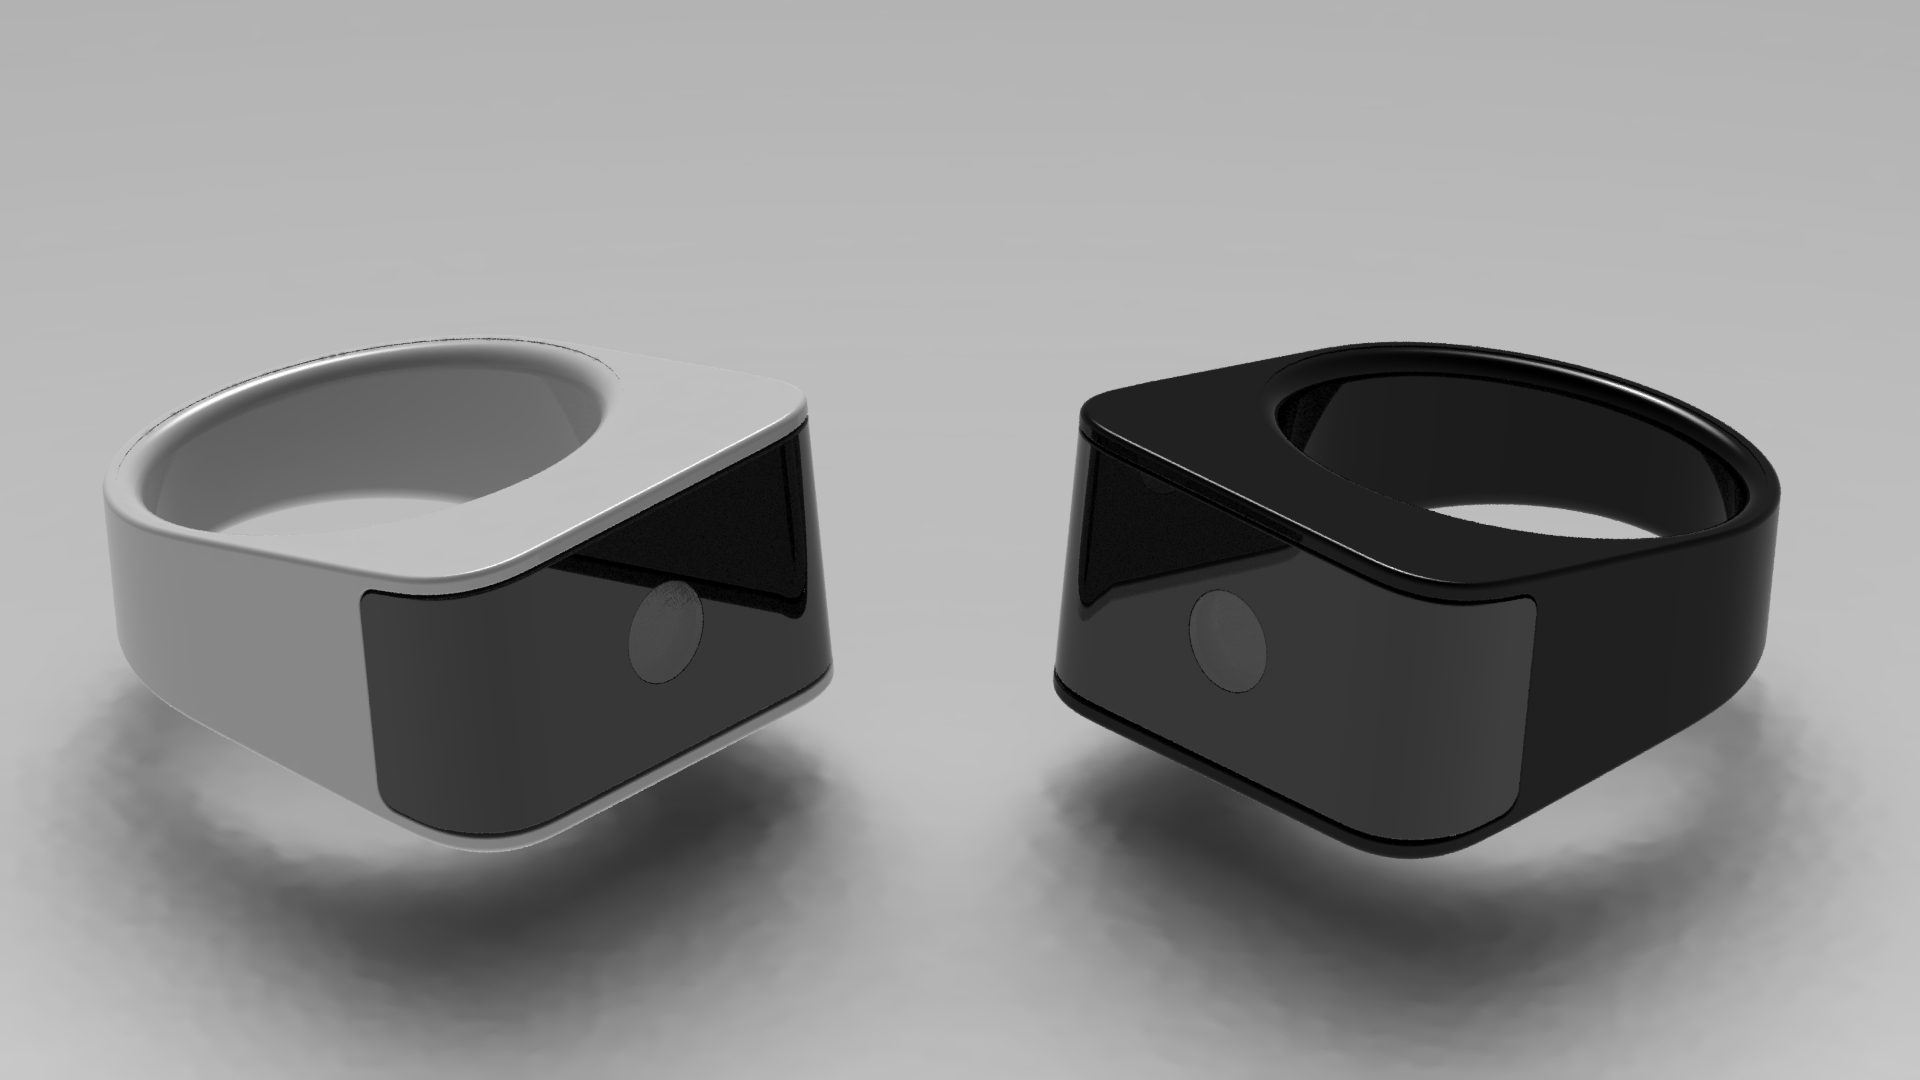 The Helios Smart Ring